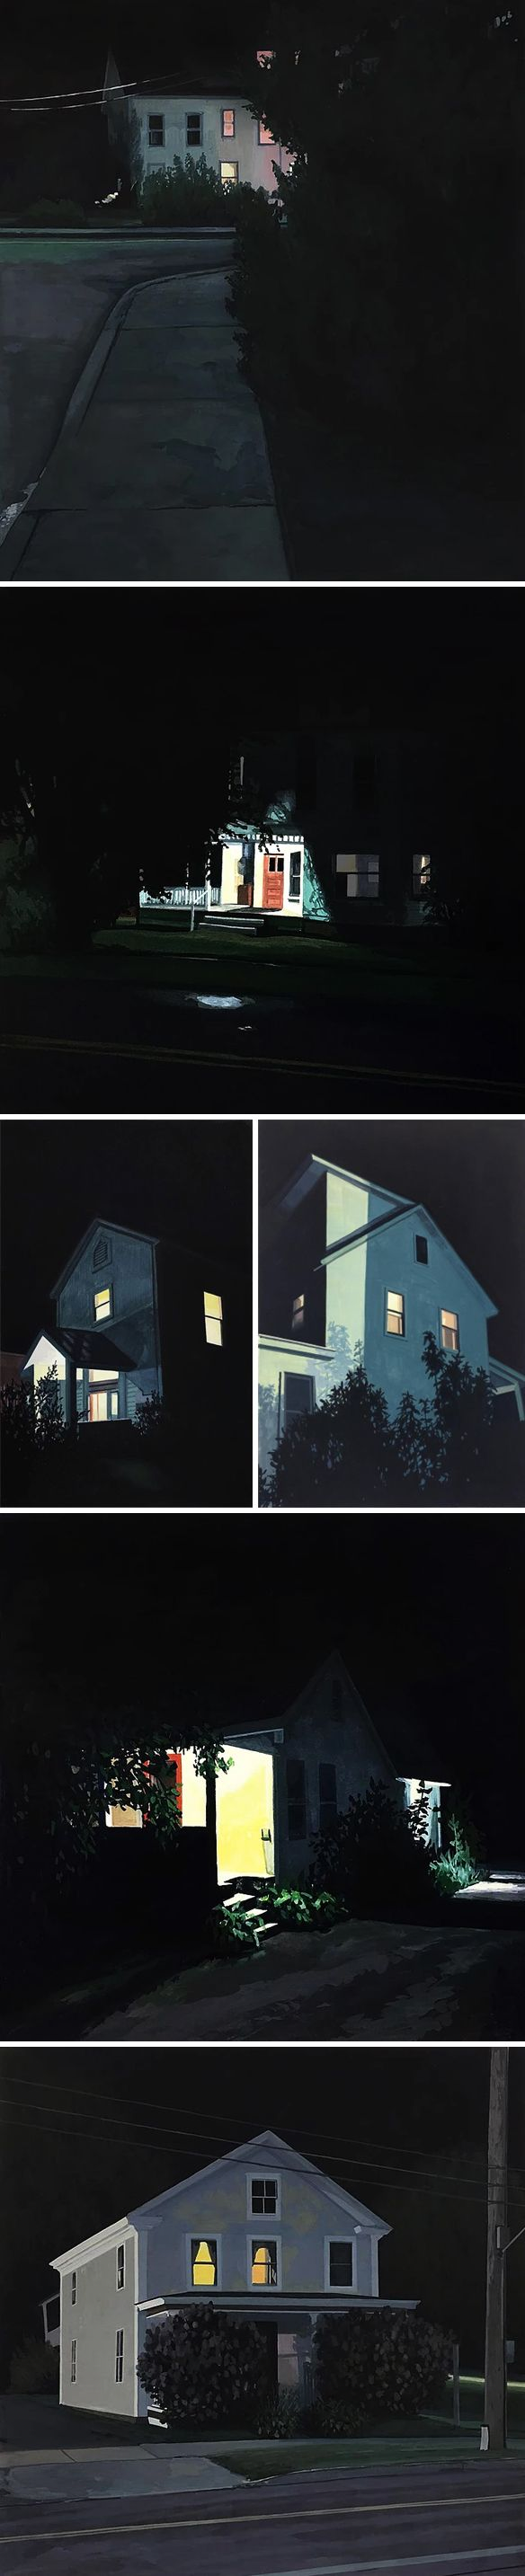 paintings on paper by christopher burk <3